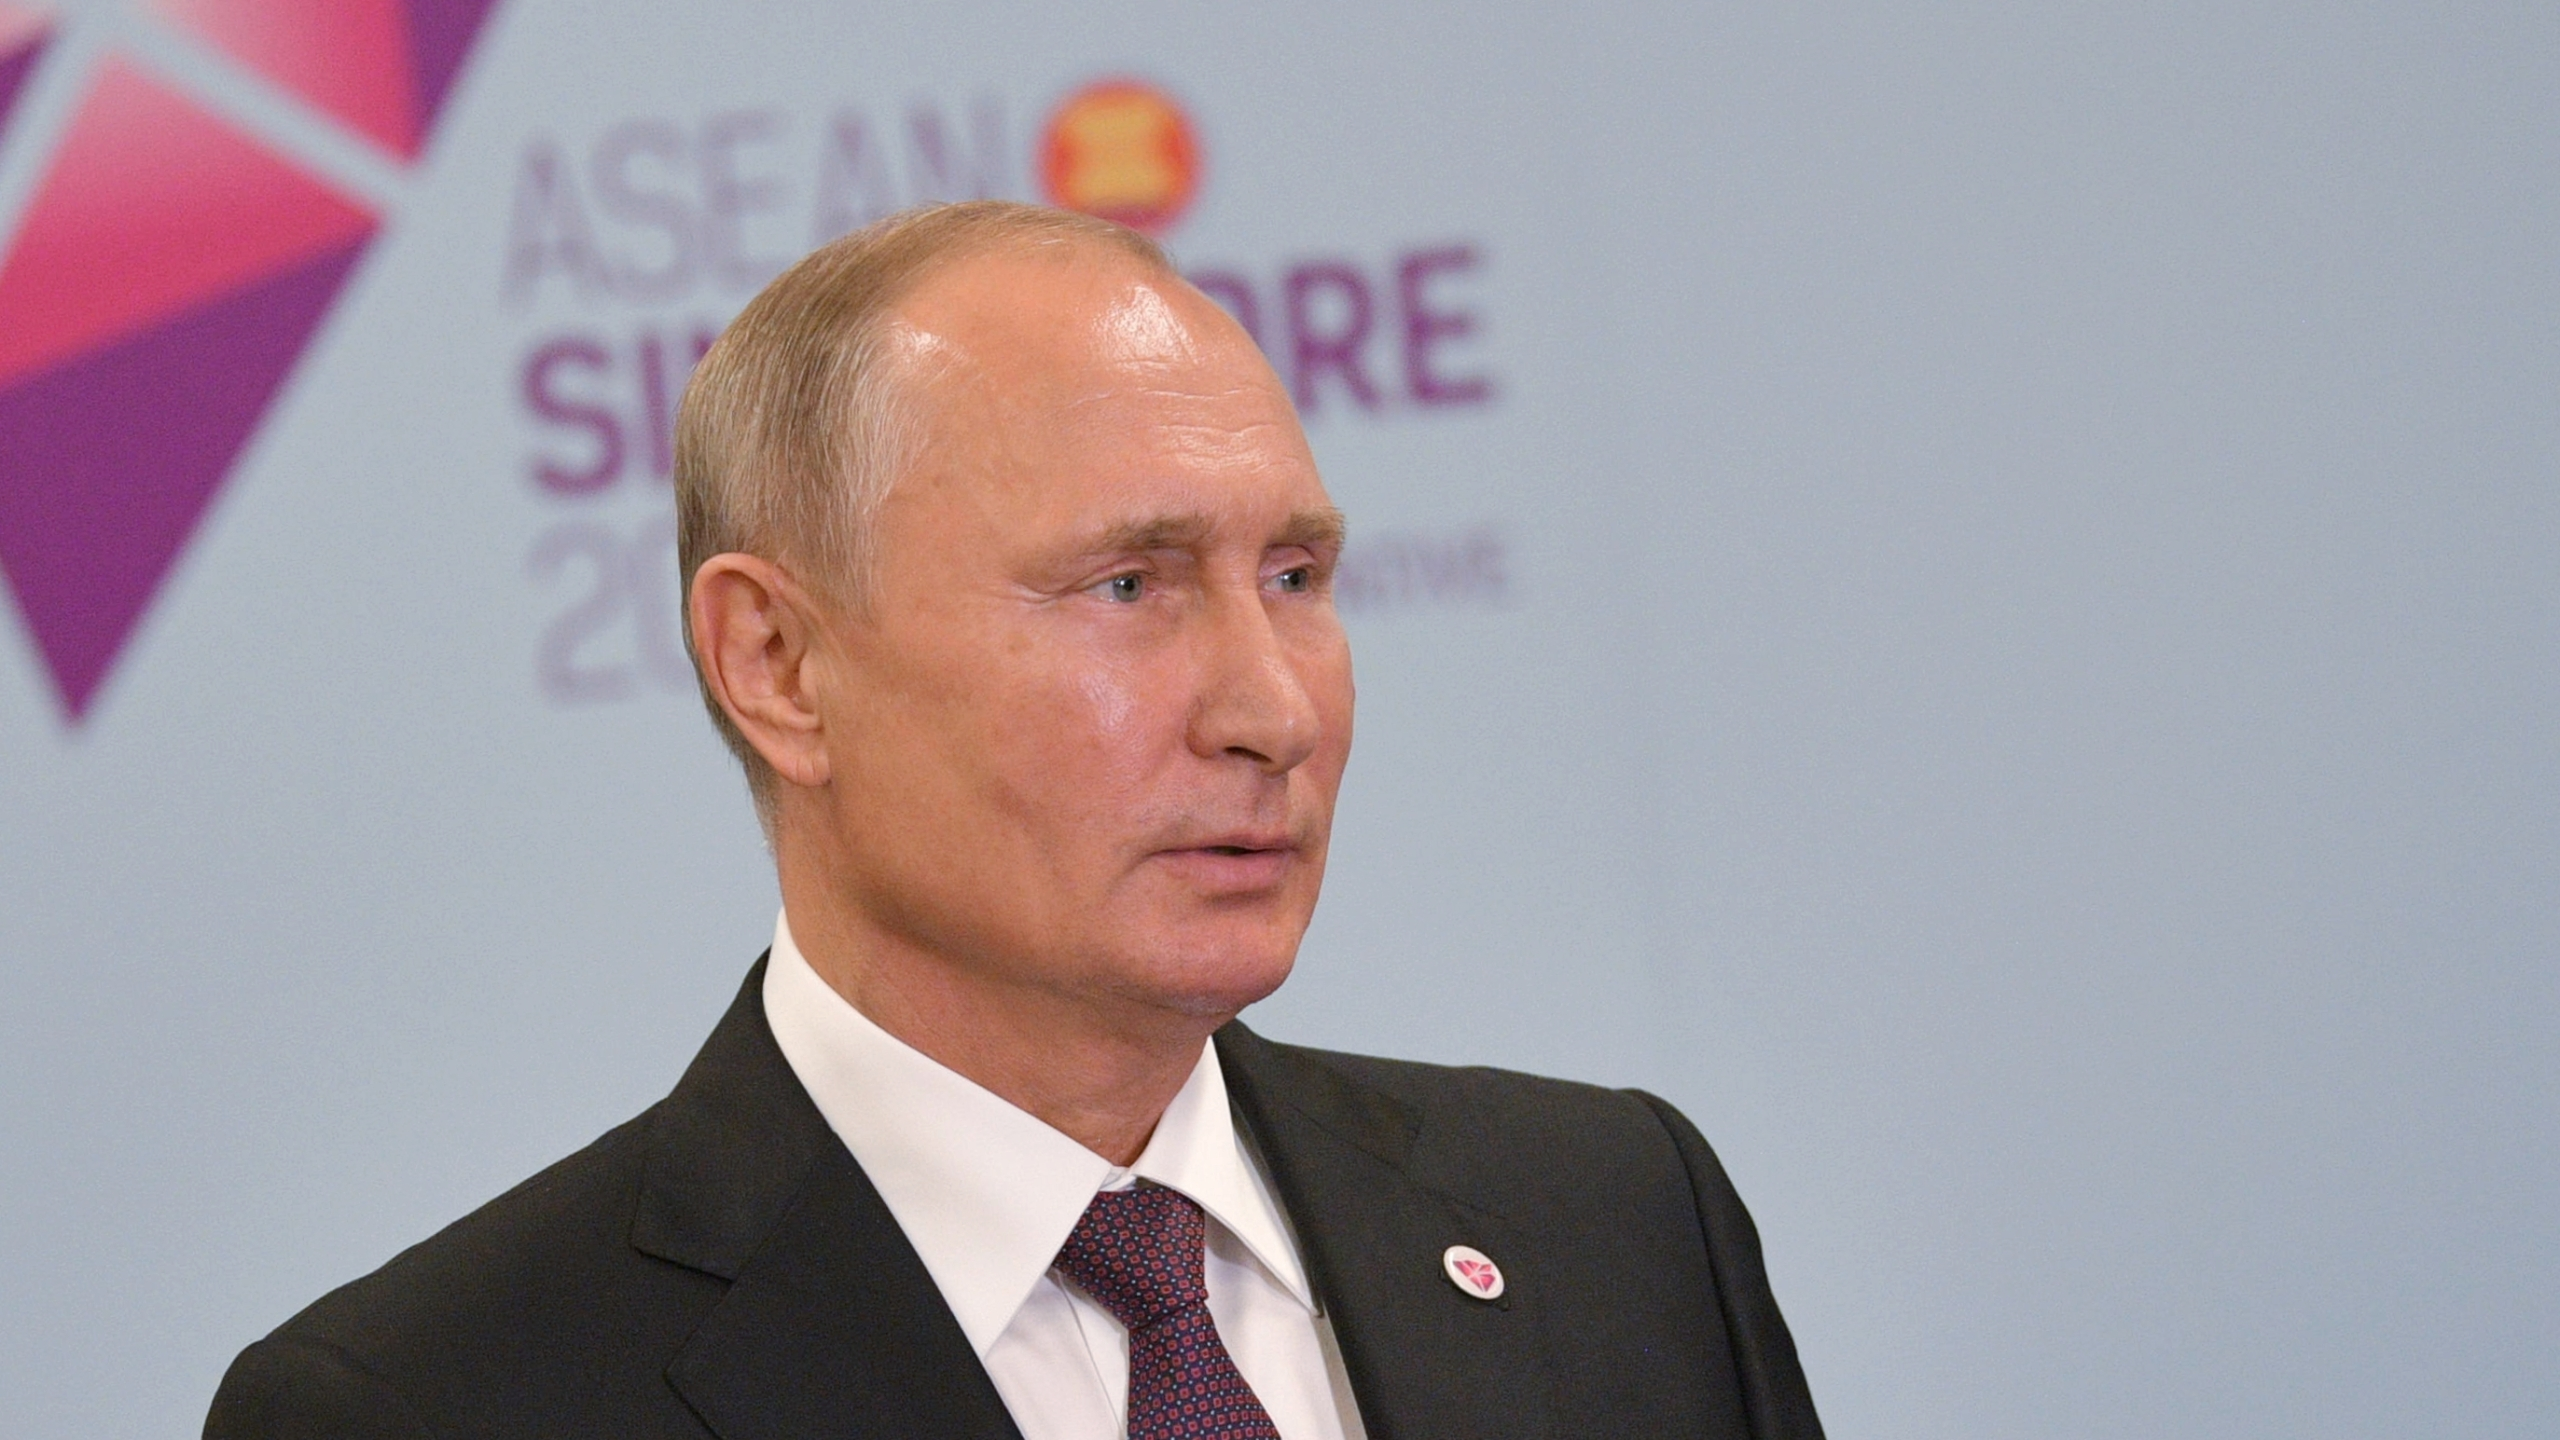 Russian President Vladimir Putin attends a press conference after the East Asia Summit in Singapore on Nov. 15, 2018. (Credit: ALEXEI DRUZHININ/AFP/Getty Images)